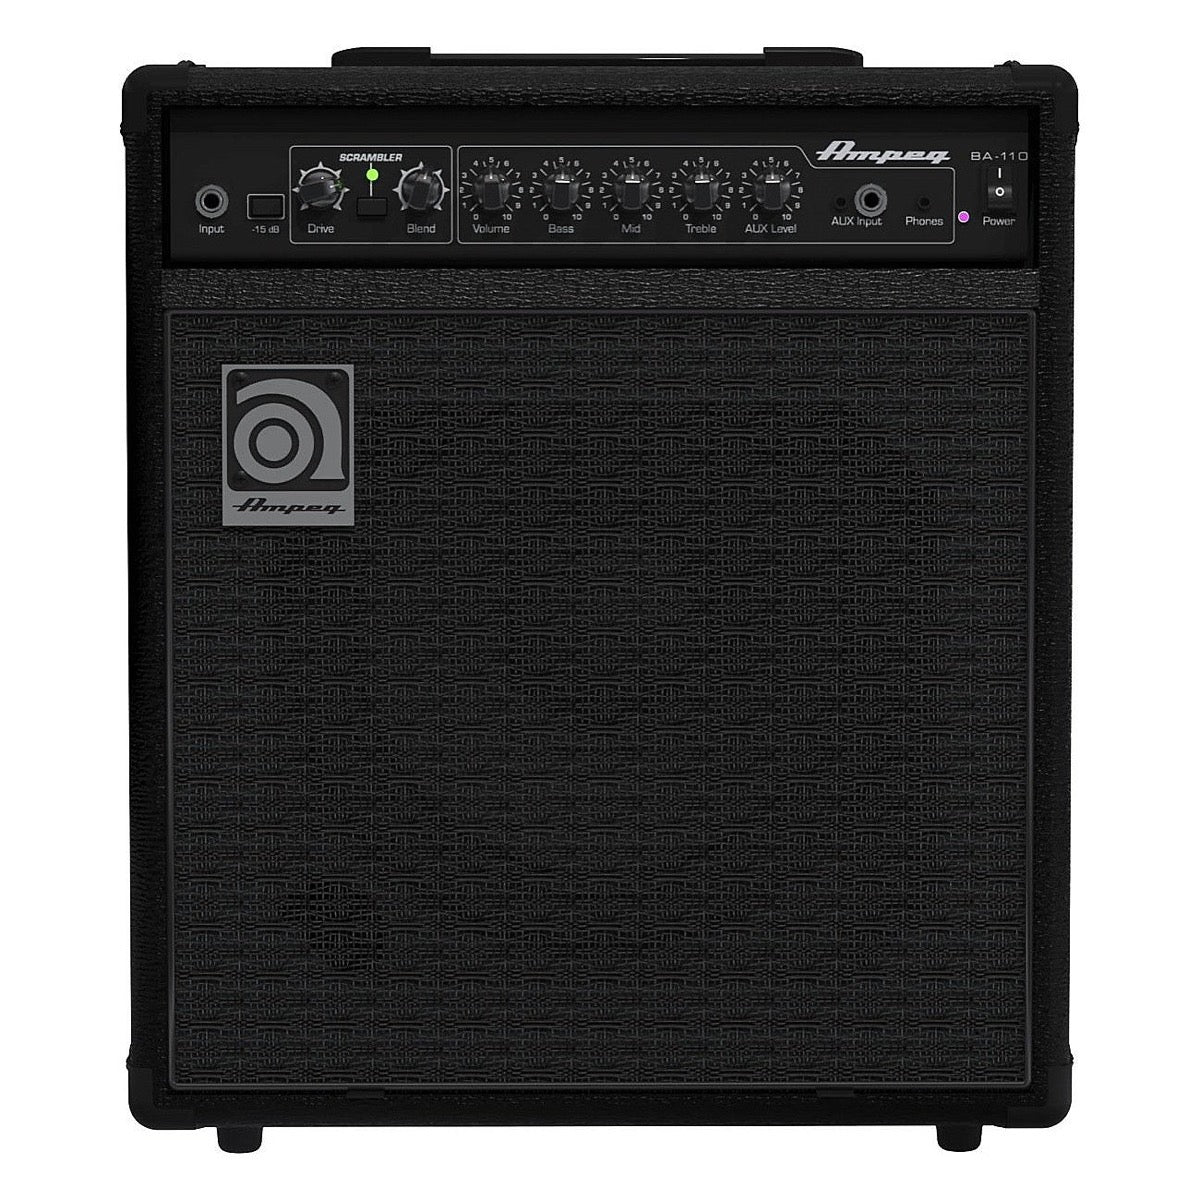 Ampeg BA-110v2 Bass Combo Amplifier